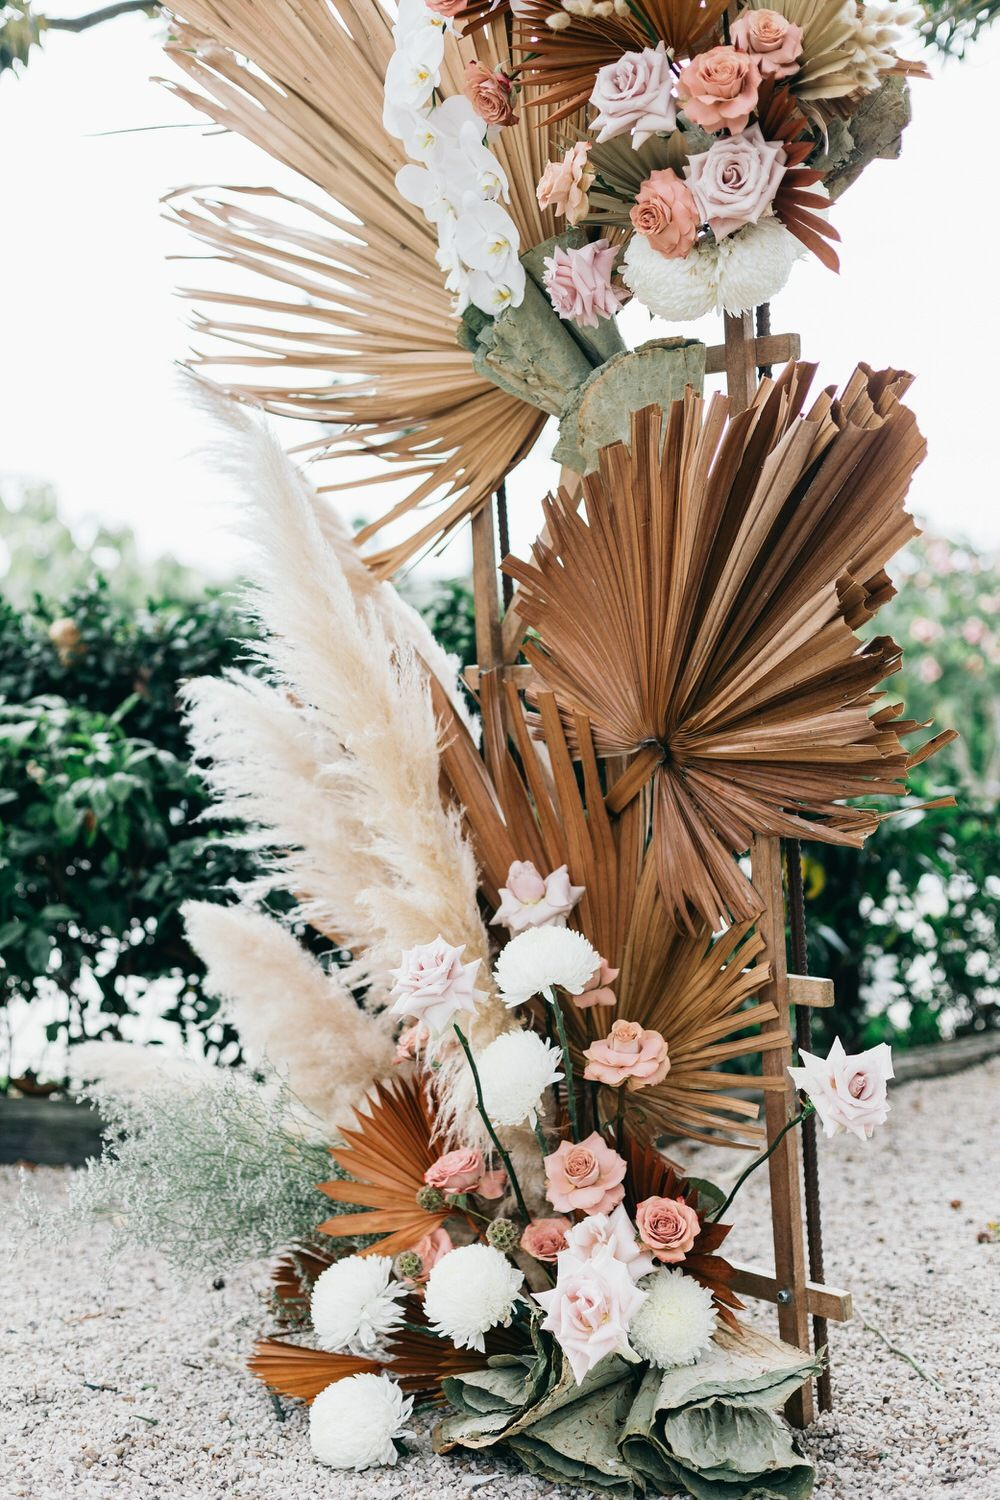 Chic Byron Bay Wedding with Dried Botanicals ⋆ Ruffled